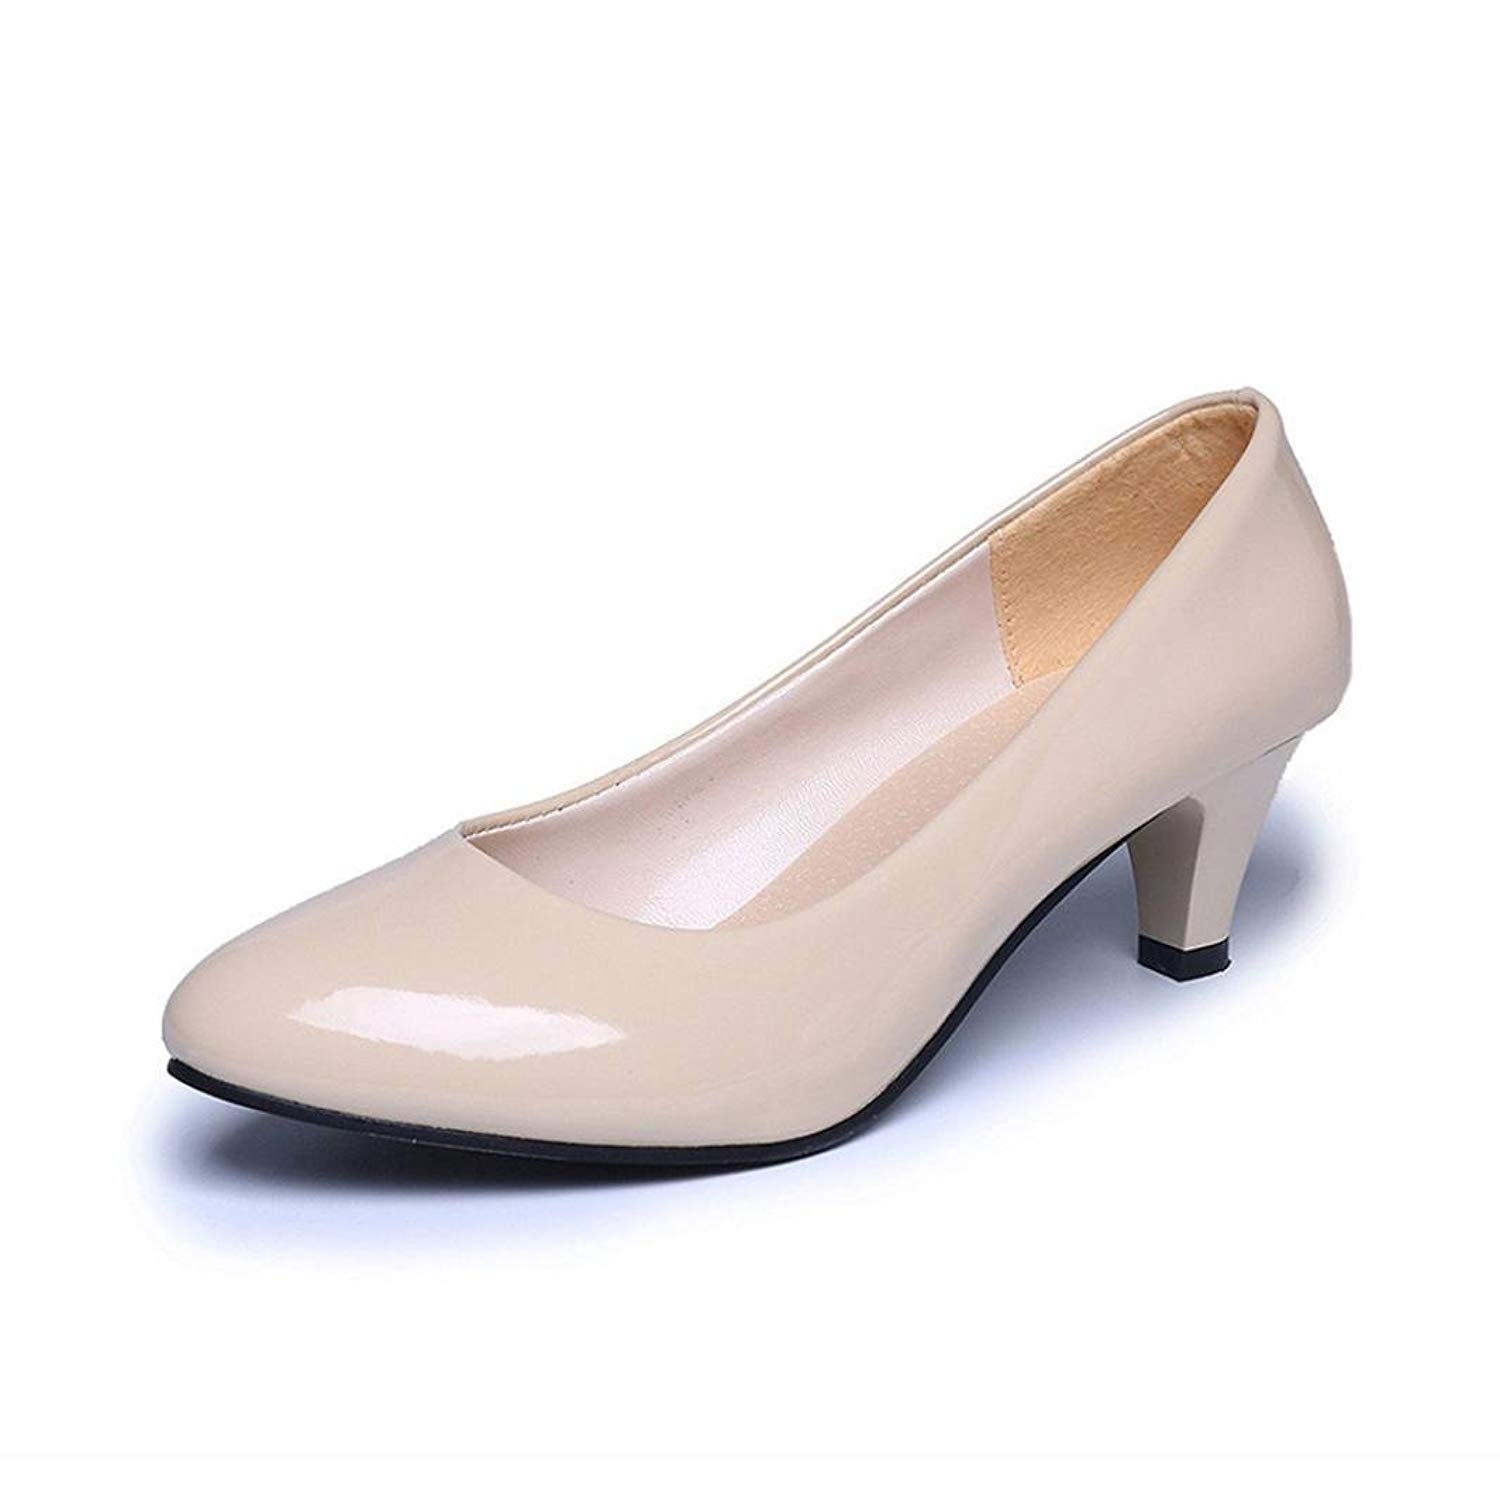 a9af7eb01e4 Cheap Low Heel Nude, find Low Heel Nude deals on line at Alibaba.com